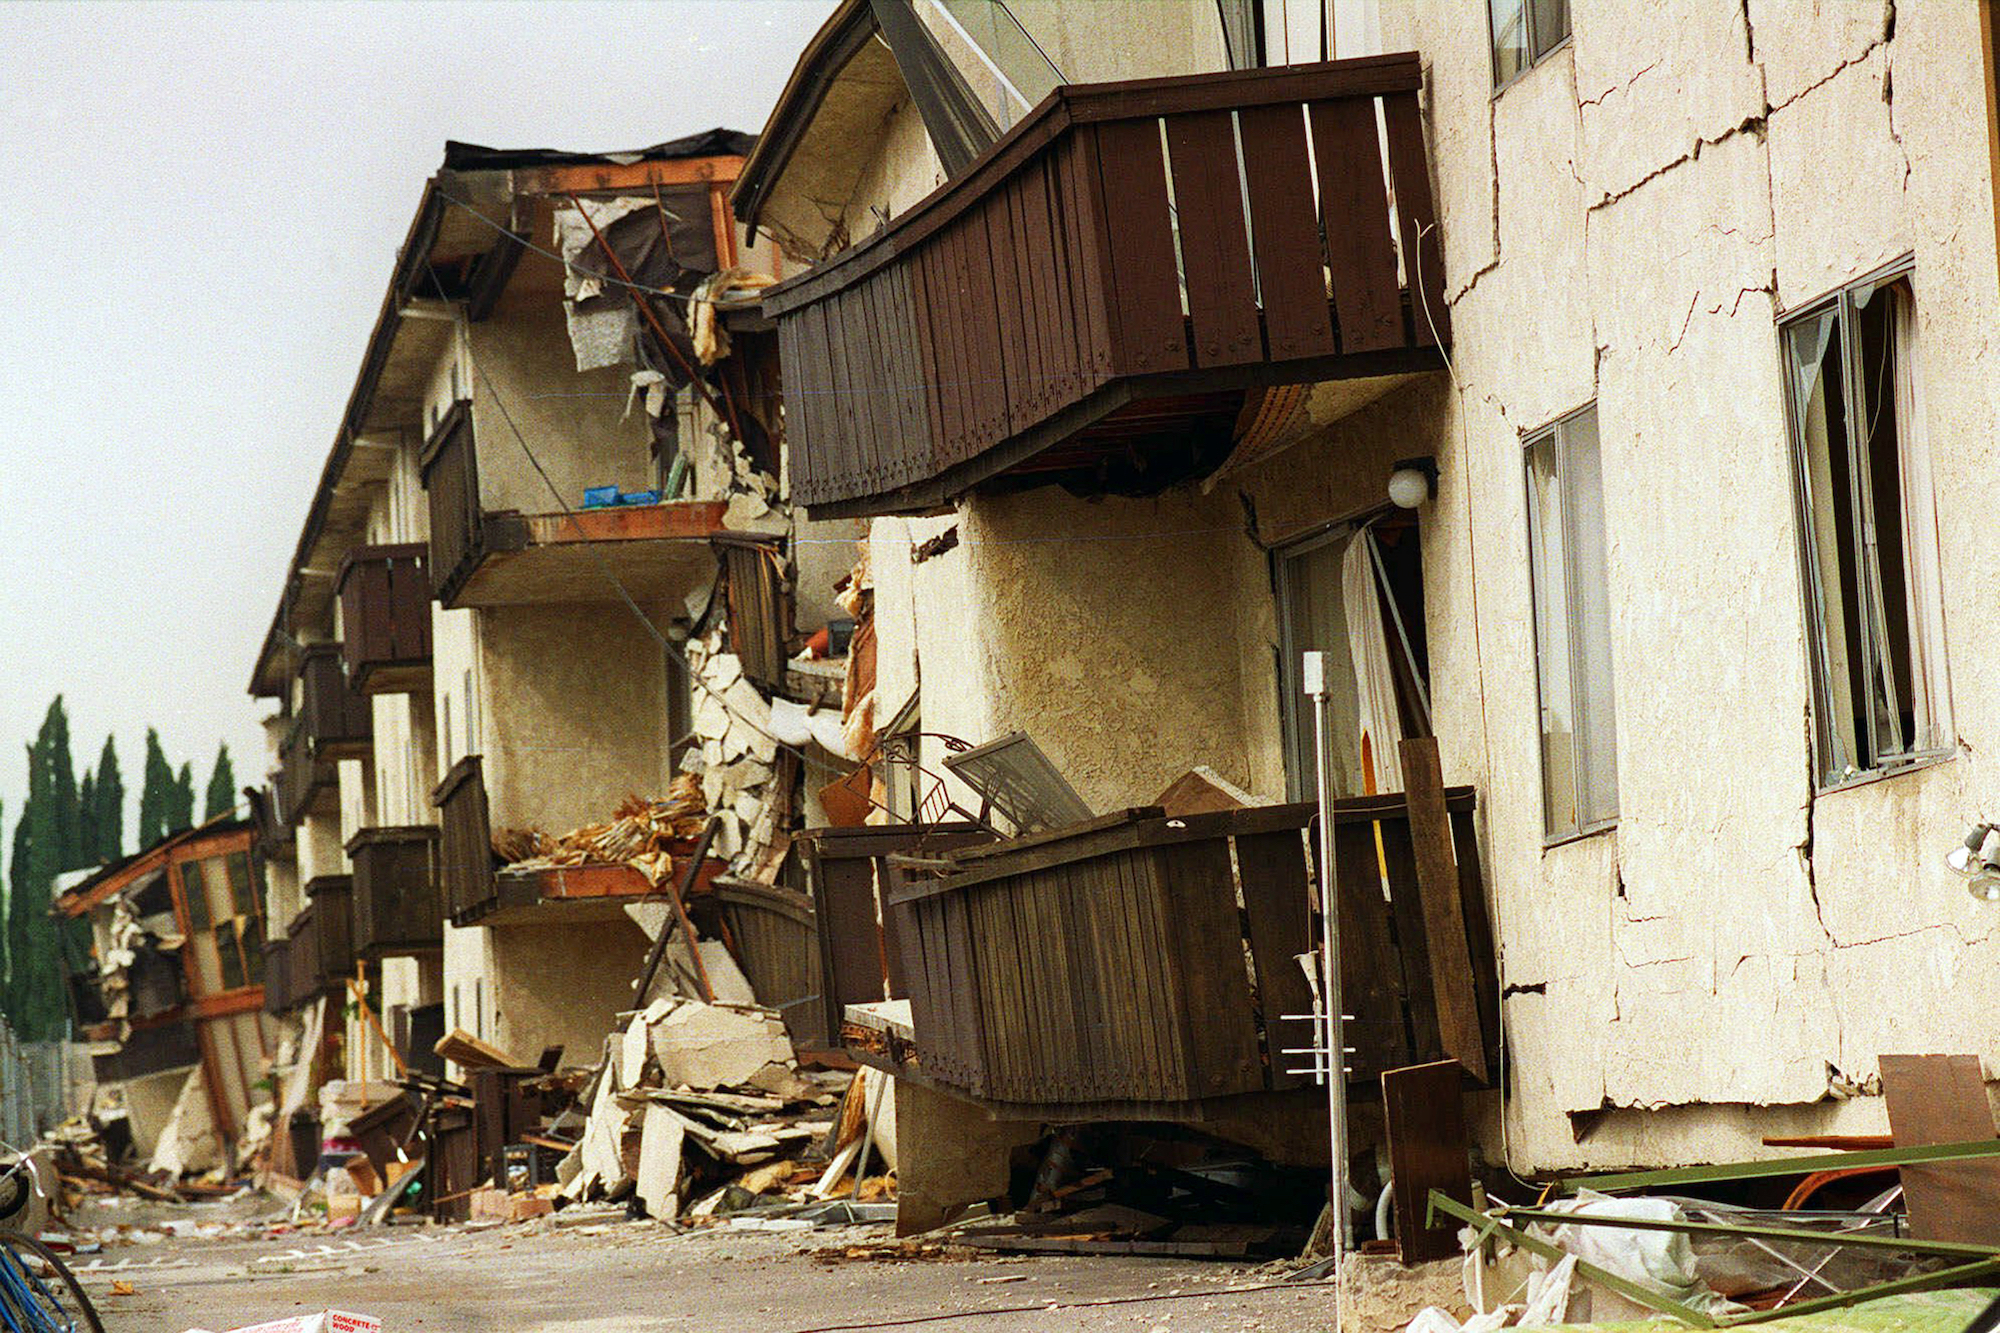 The violent 1994 Northridge quake caused the collapse of the upper floor of the Northridge Meadows apartment complex, killing 16 people.